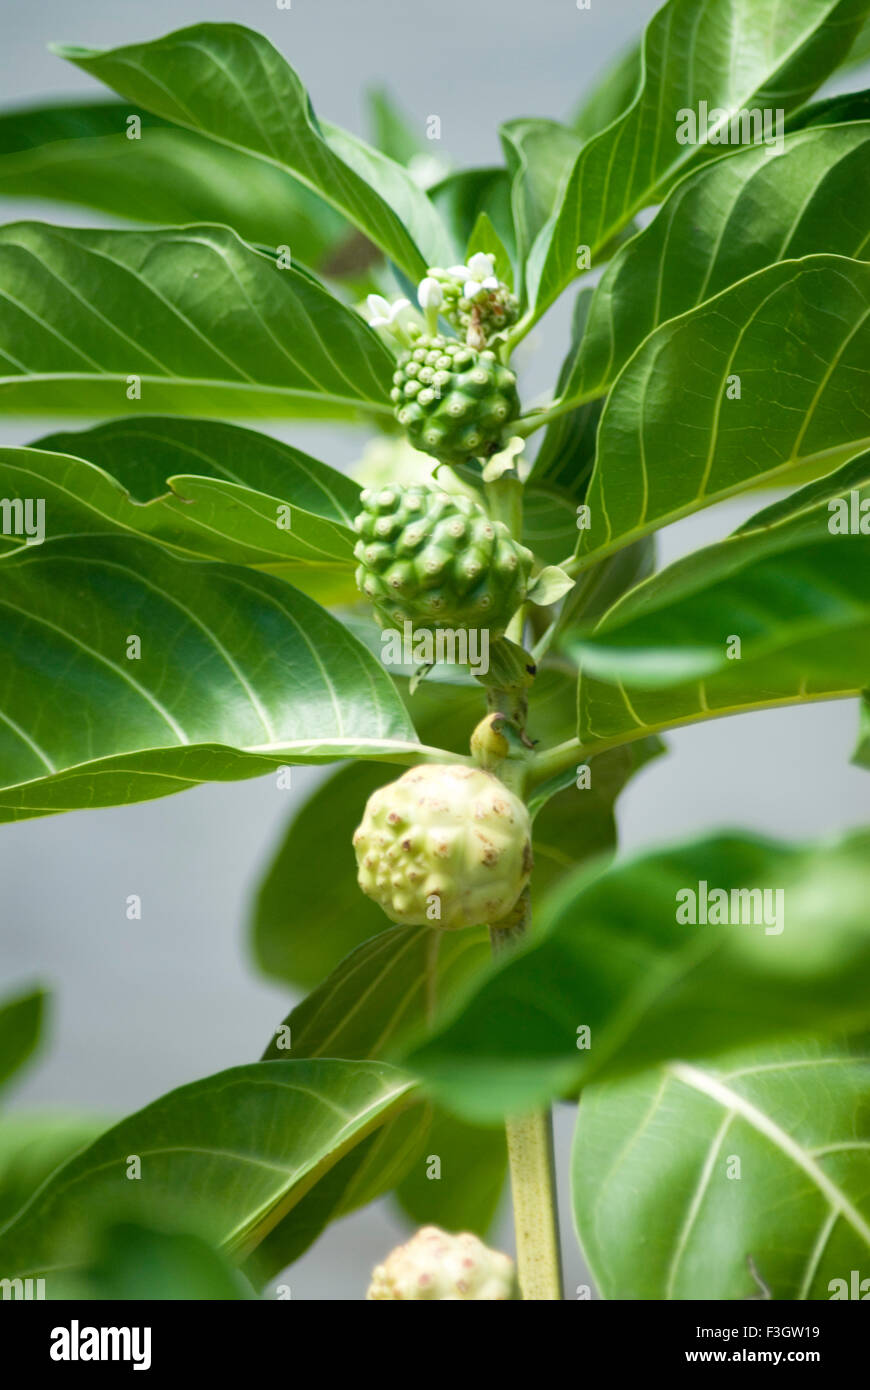 Medicinal plant local name bartondi Indian mulberry morinda Stock